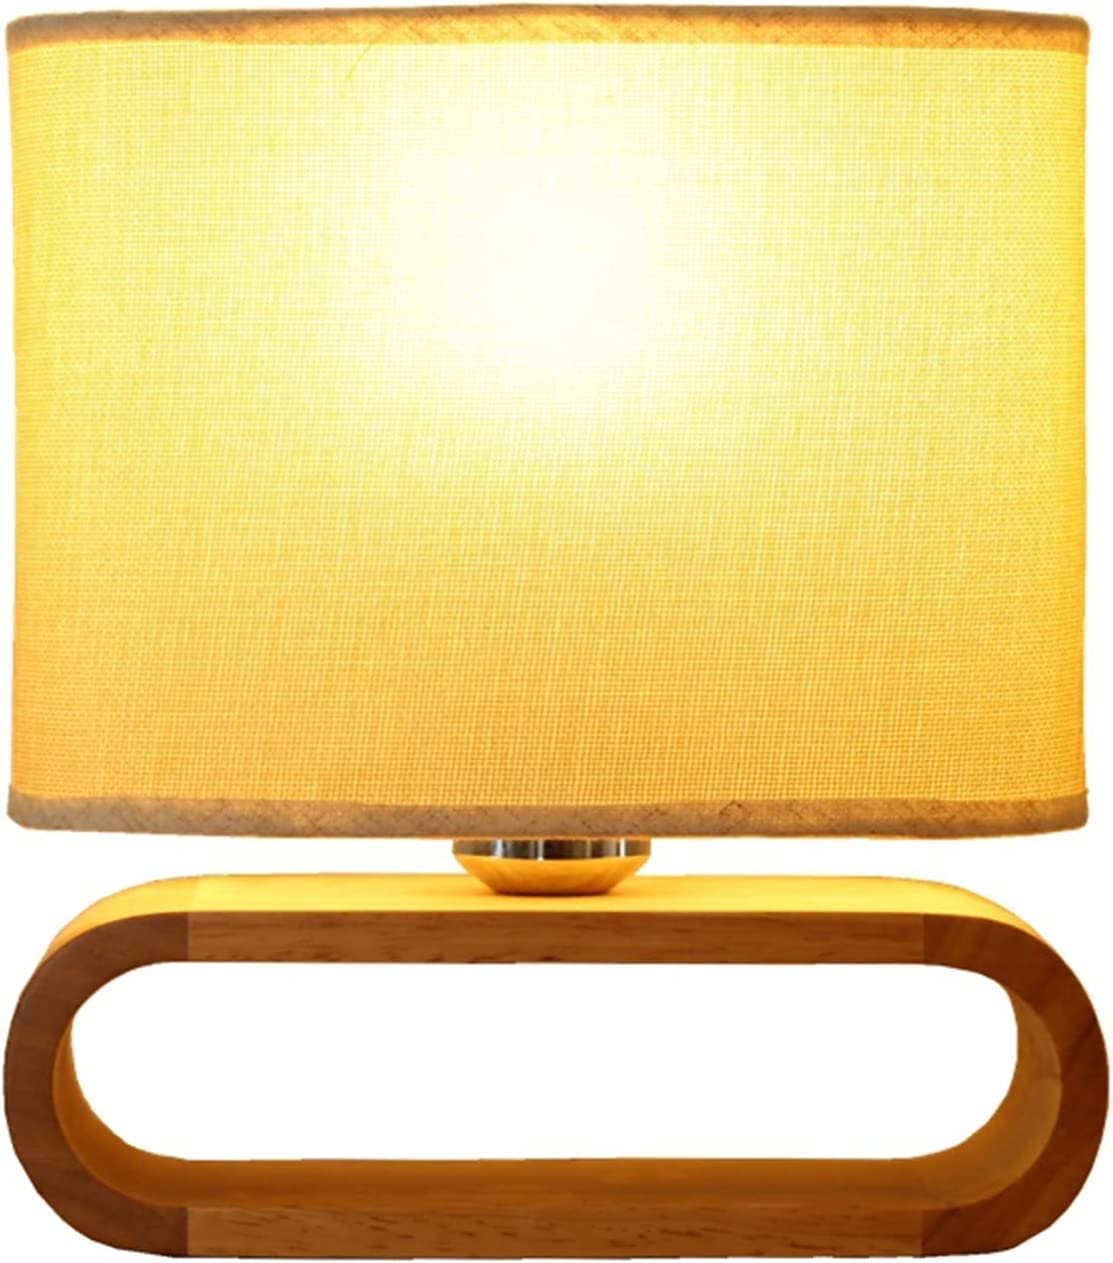 New products world's highest quality popular mart Bedside Table Lamps Desk Lamp Base With Cloth La Wood